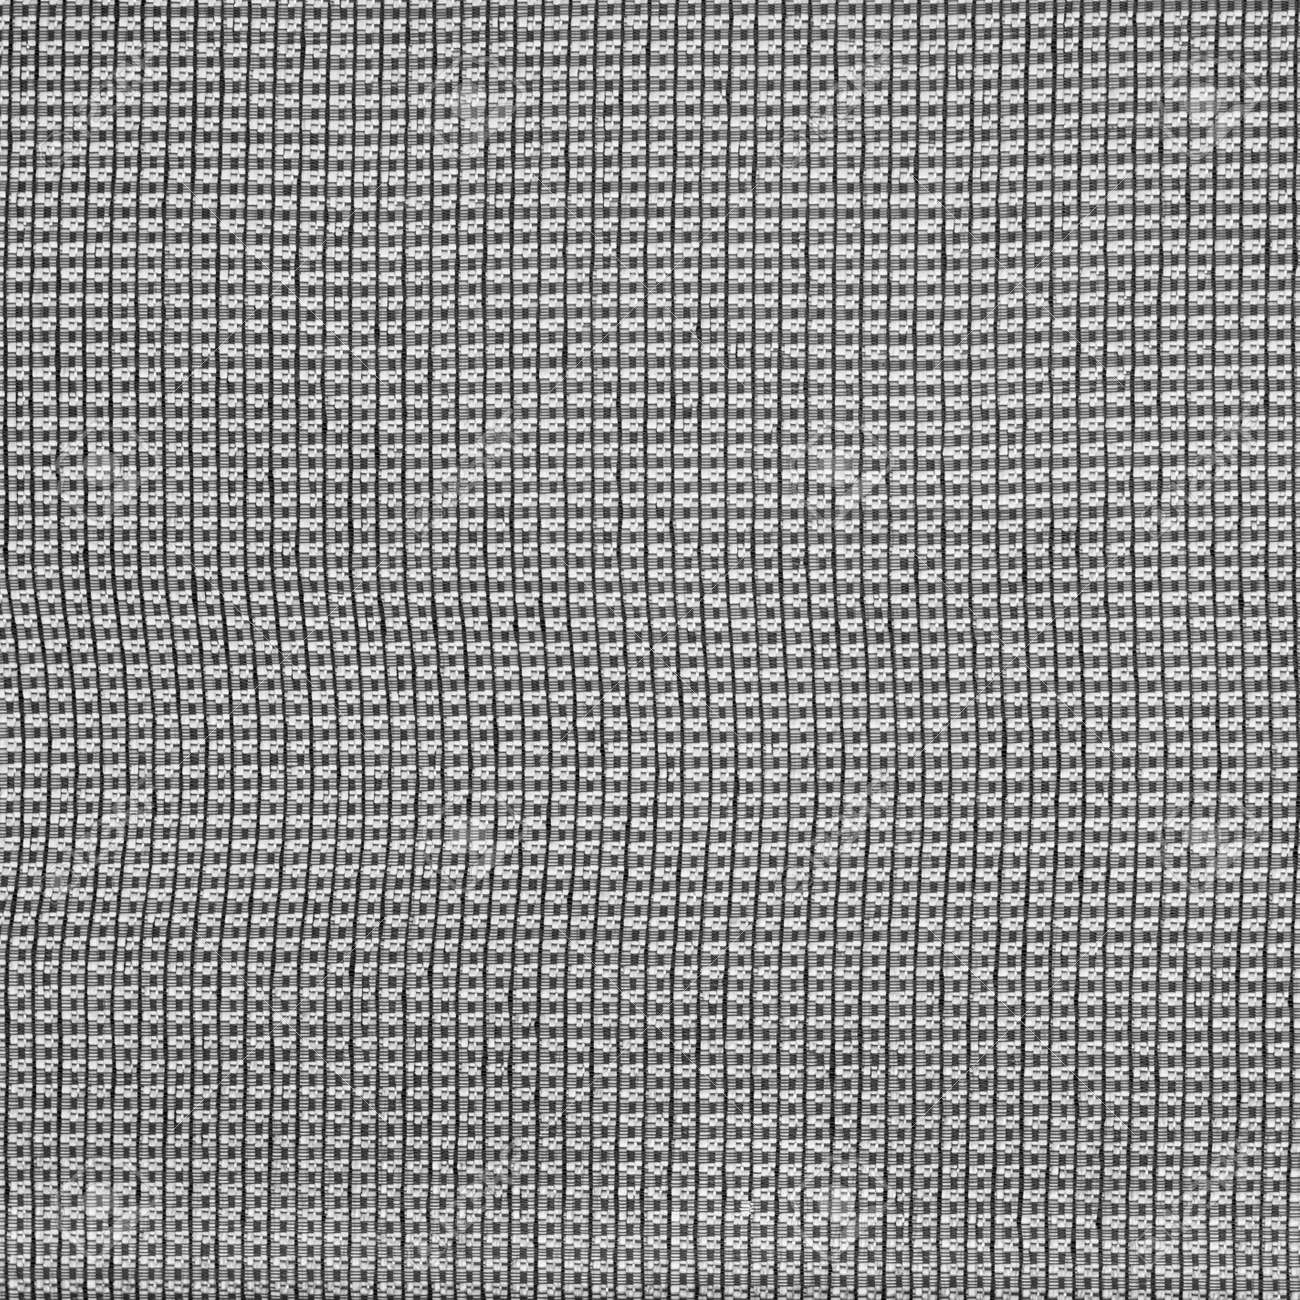 Black And White Canvas Pictures Black And White Canvas Texture Pattern Grayscale Fabric Pattern